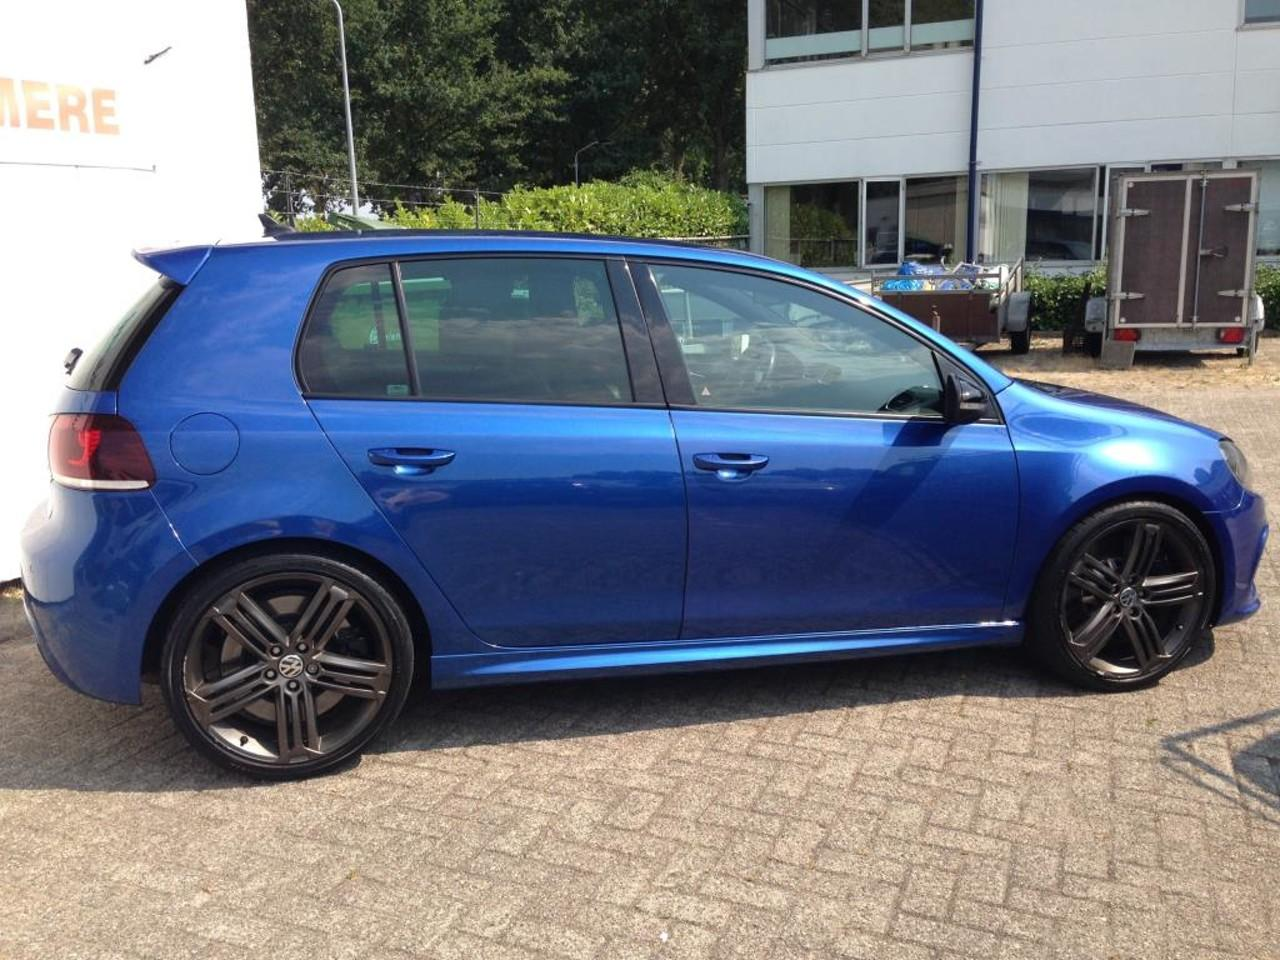 VW Golf R met 500 pk